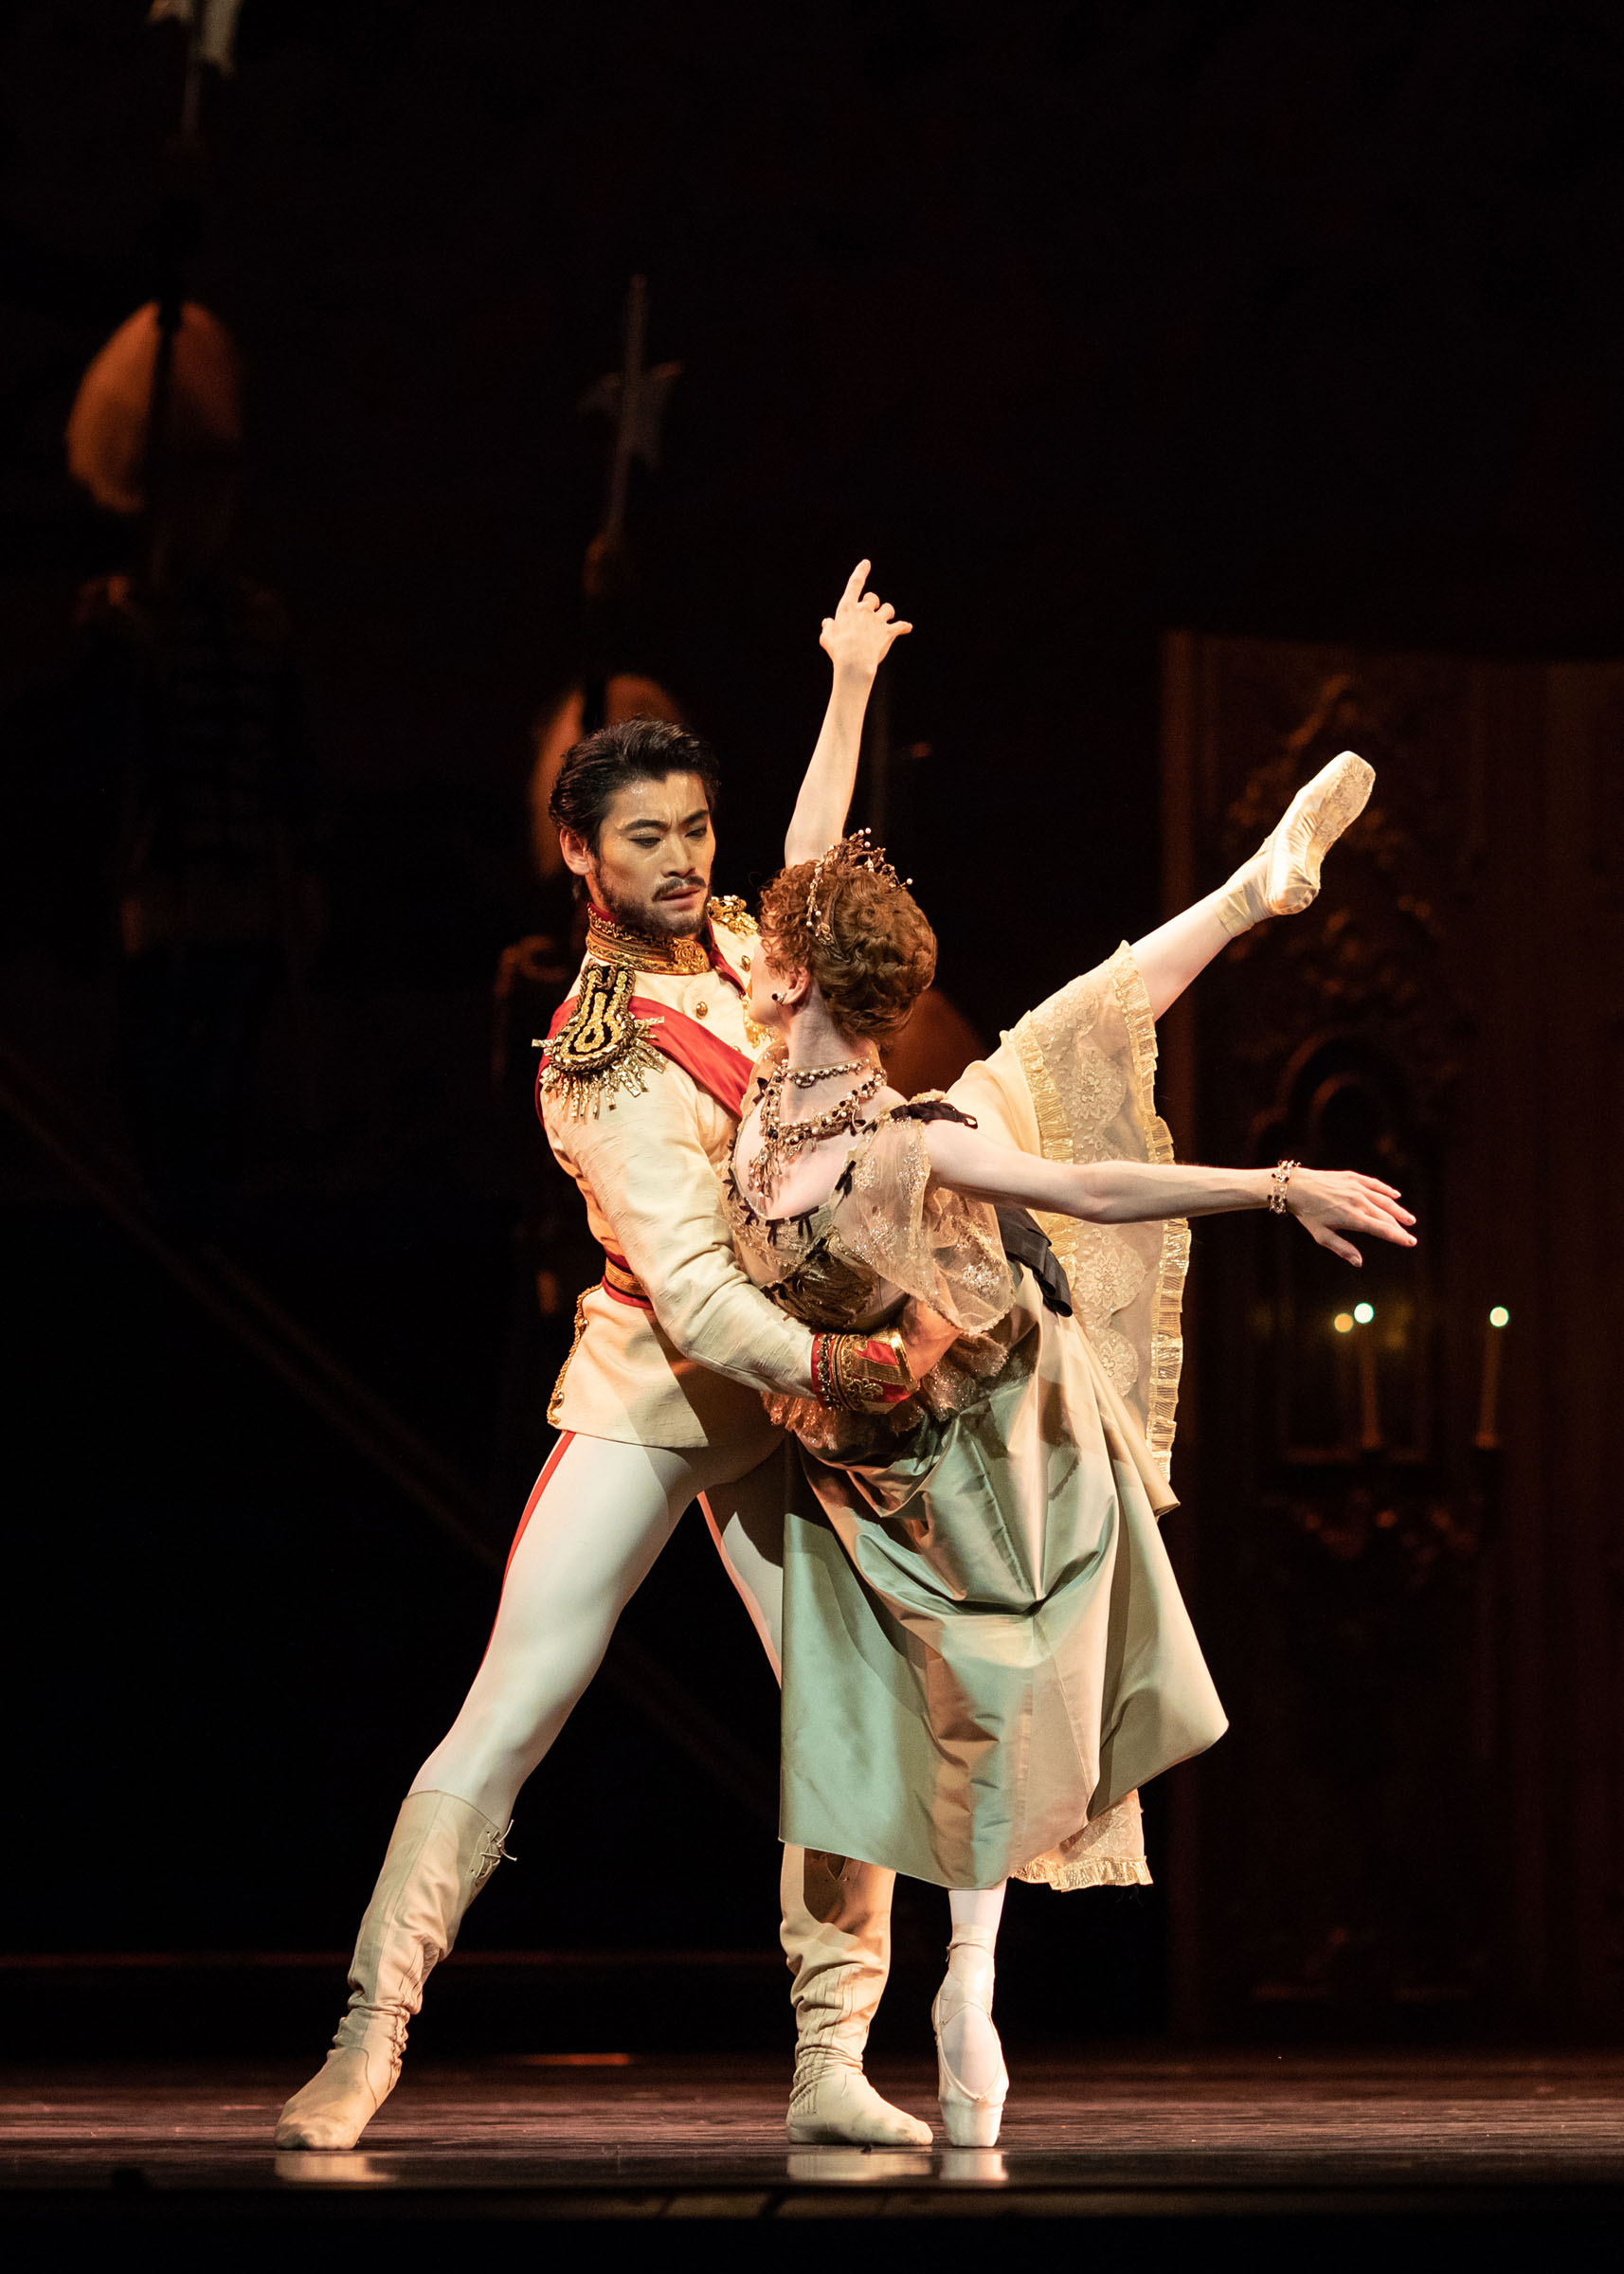 Ryoichi Hirano as Crown Prince Rudolf and Sarah Lamb as Marie Larisch in Mayerling